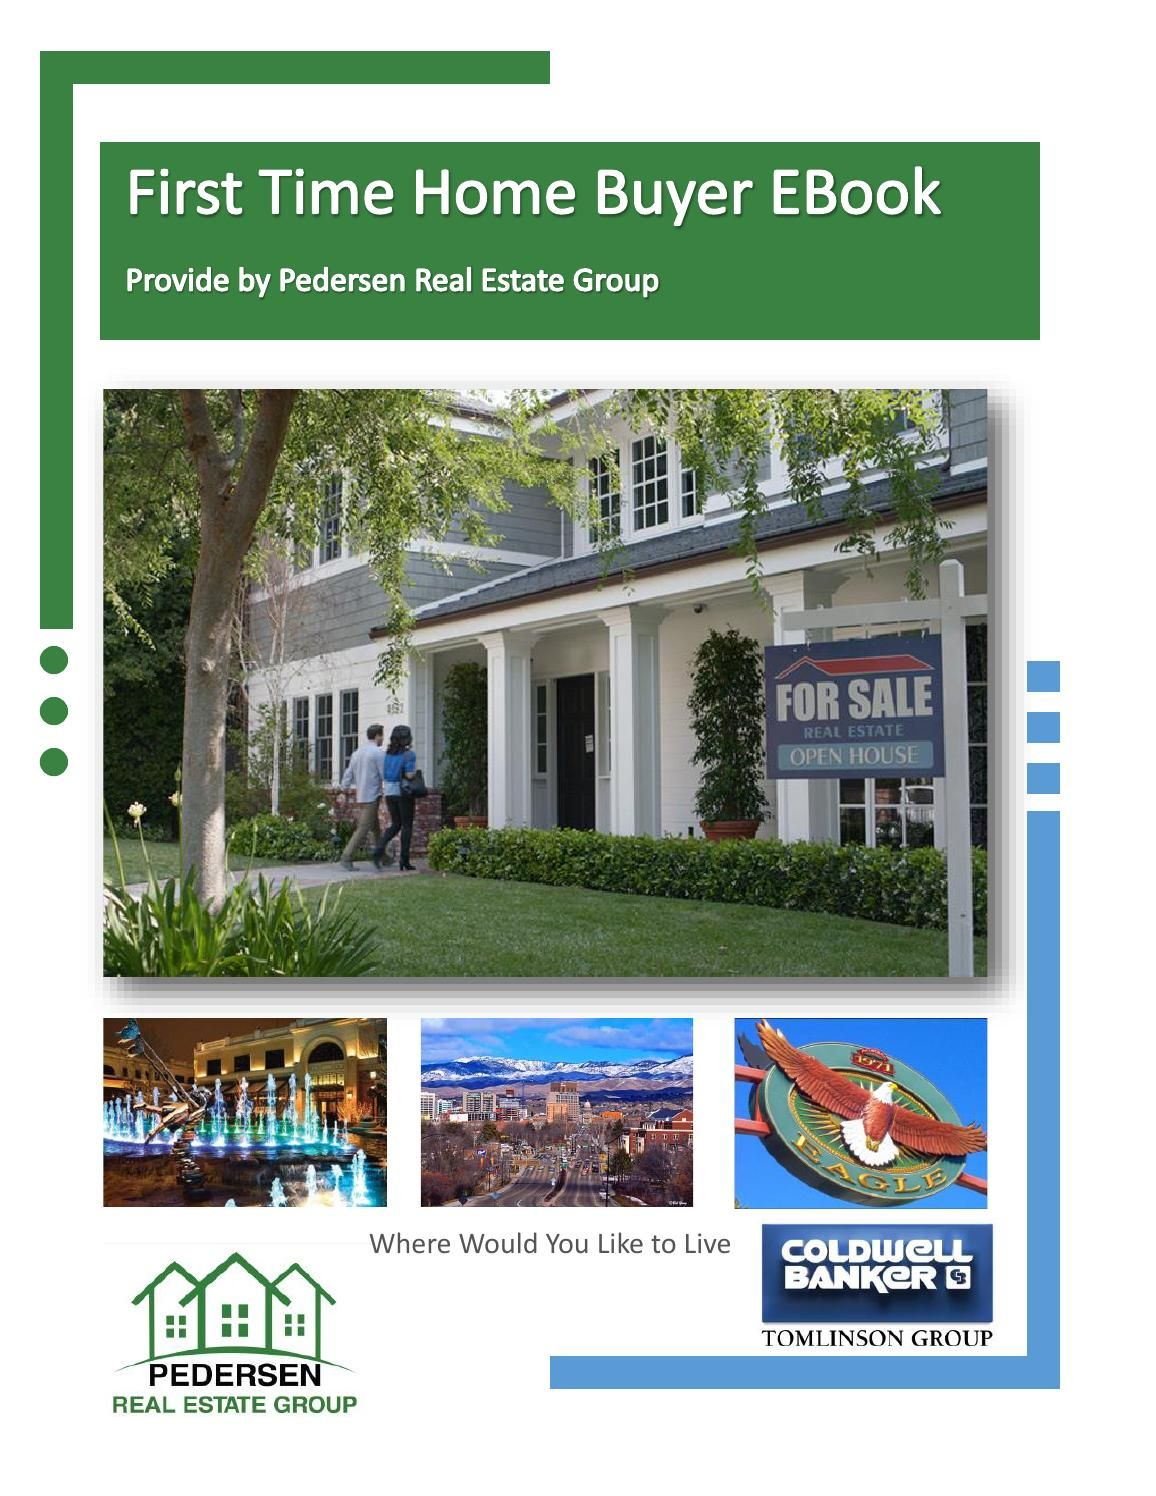 First time home buyer online mortgage mortgage loan